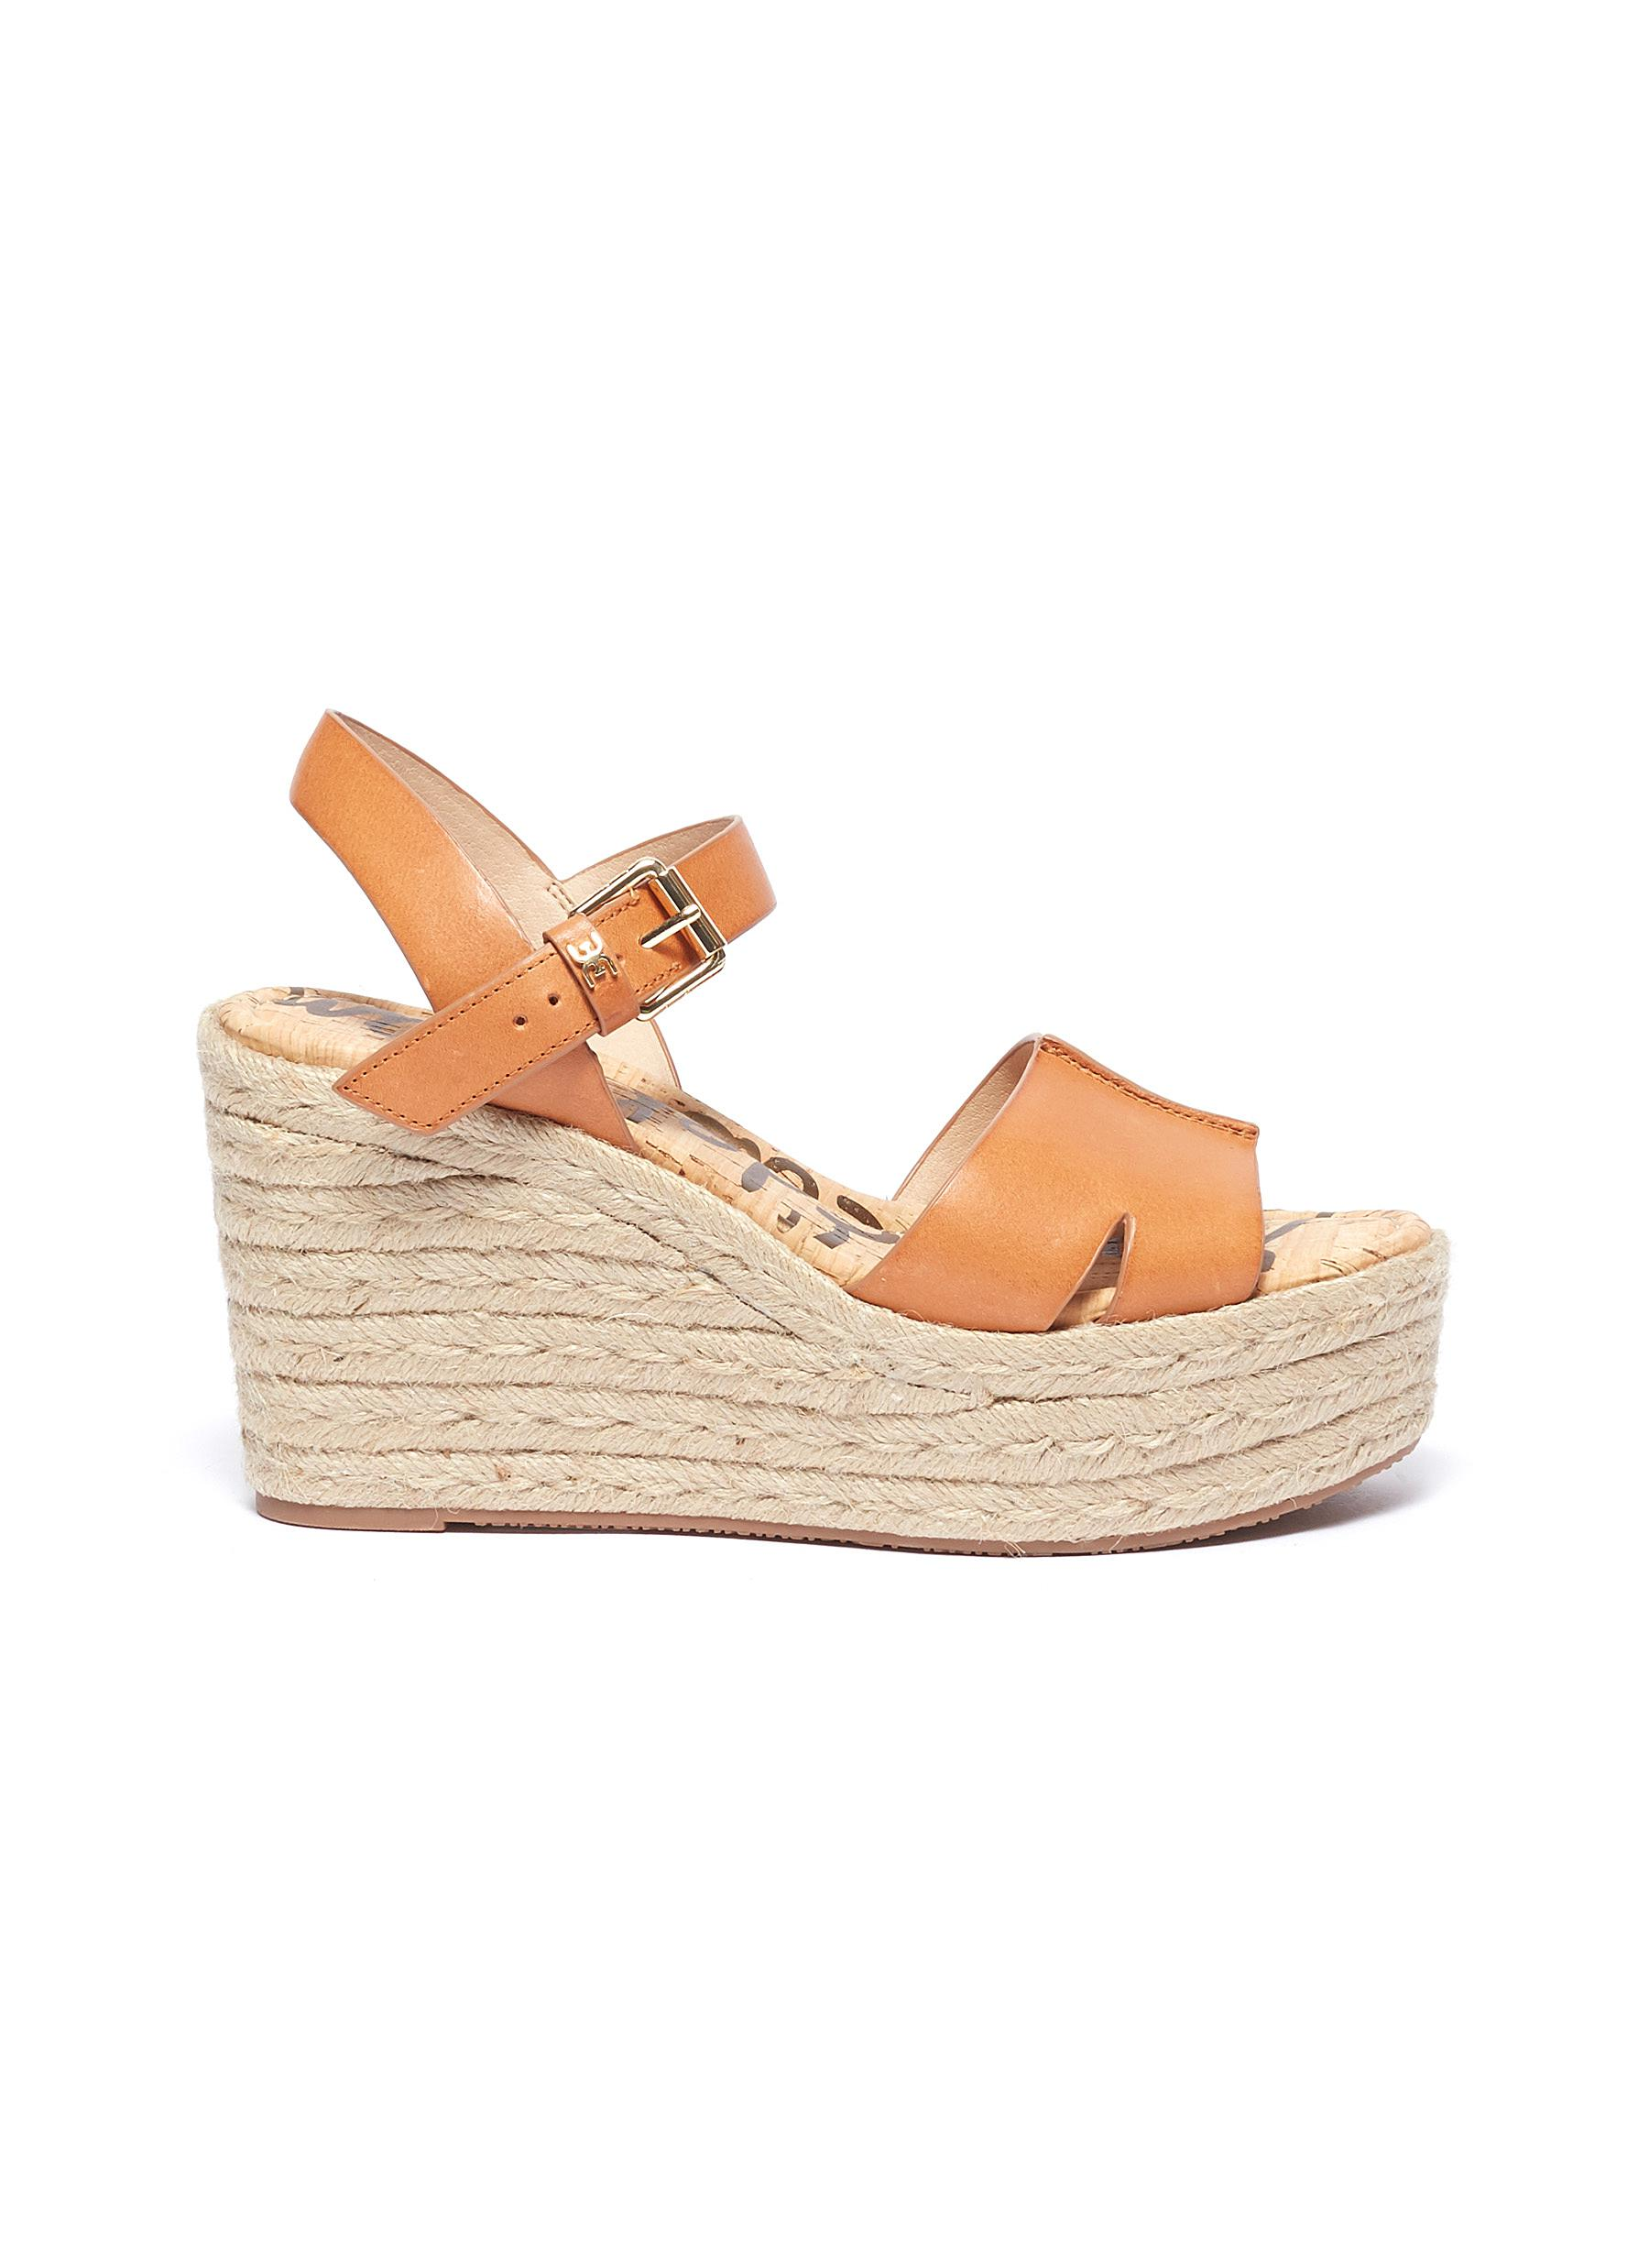 2eae89947fc Sam Edelman.  Maura  leather espadrille wedge sandals